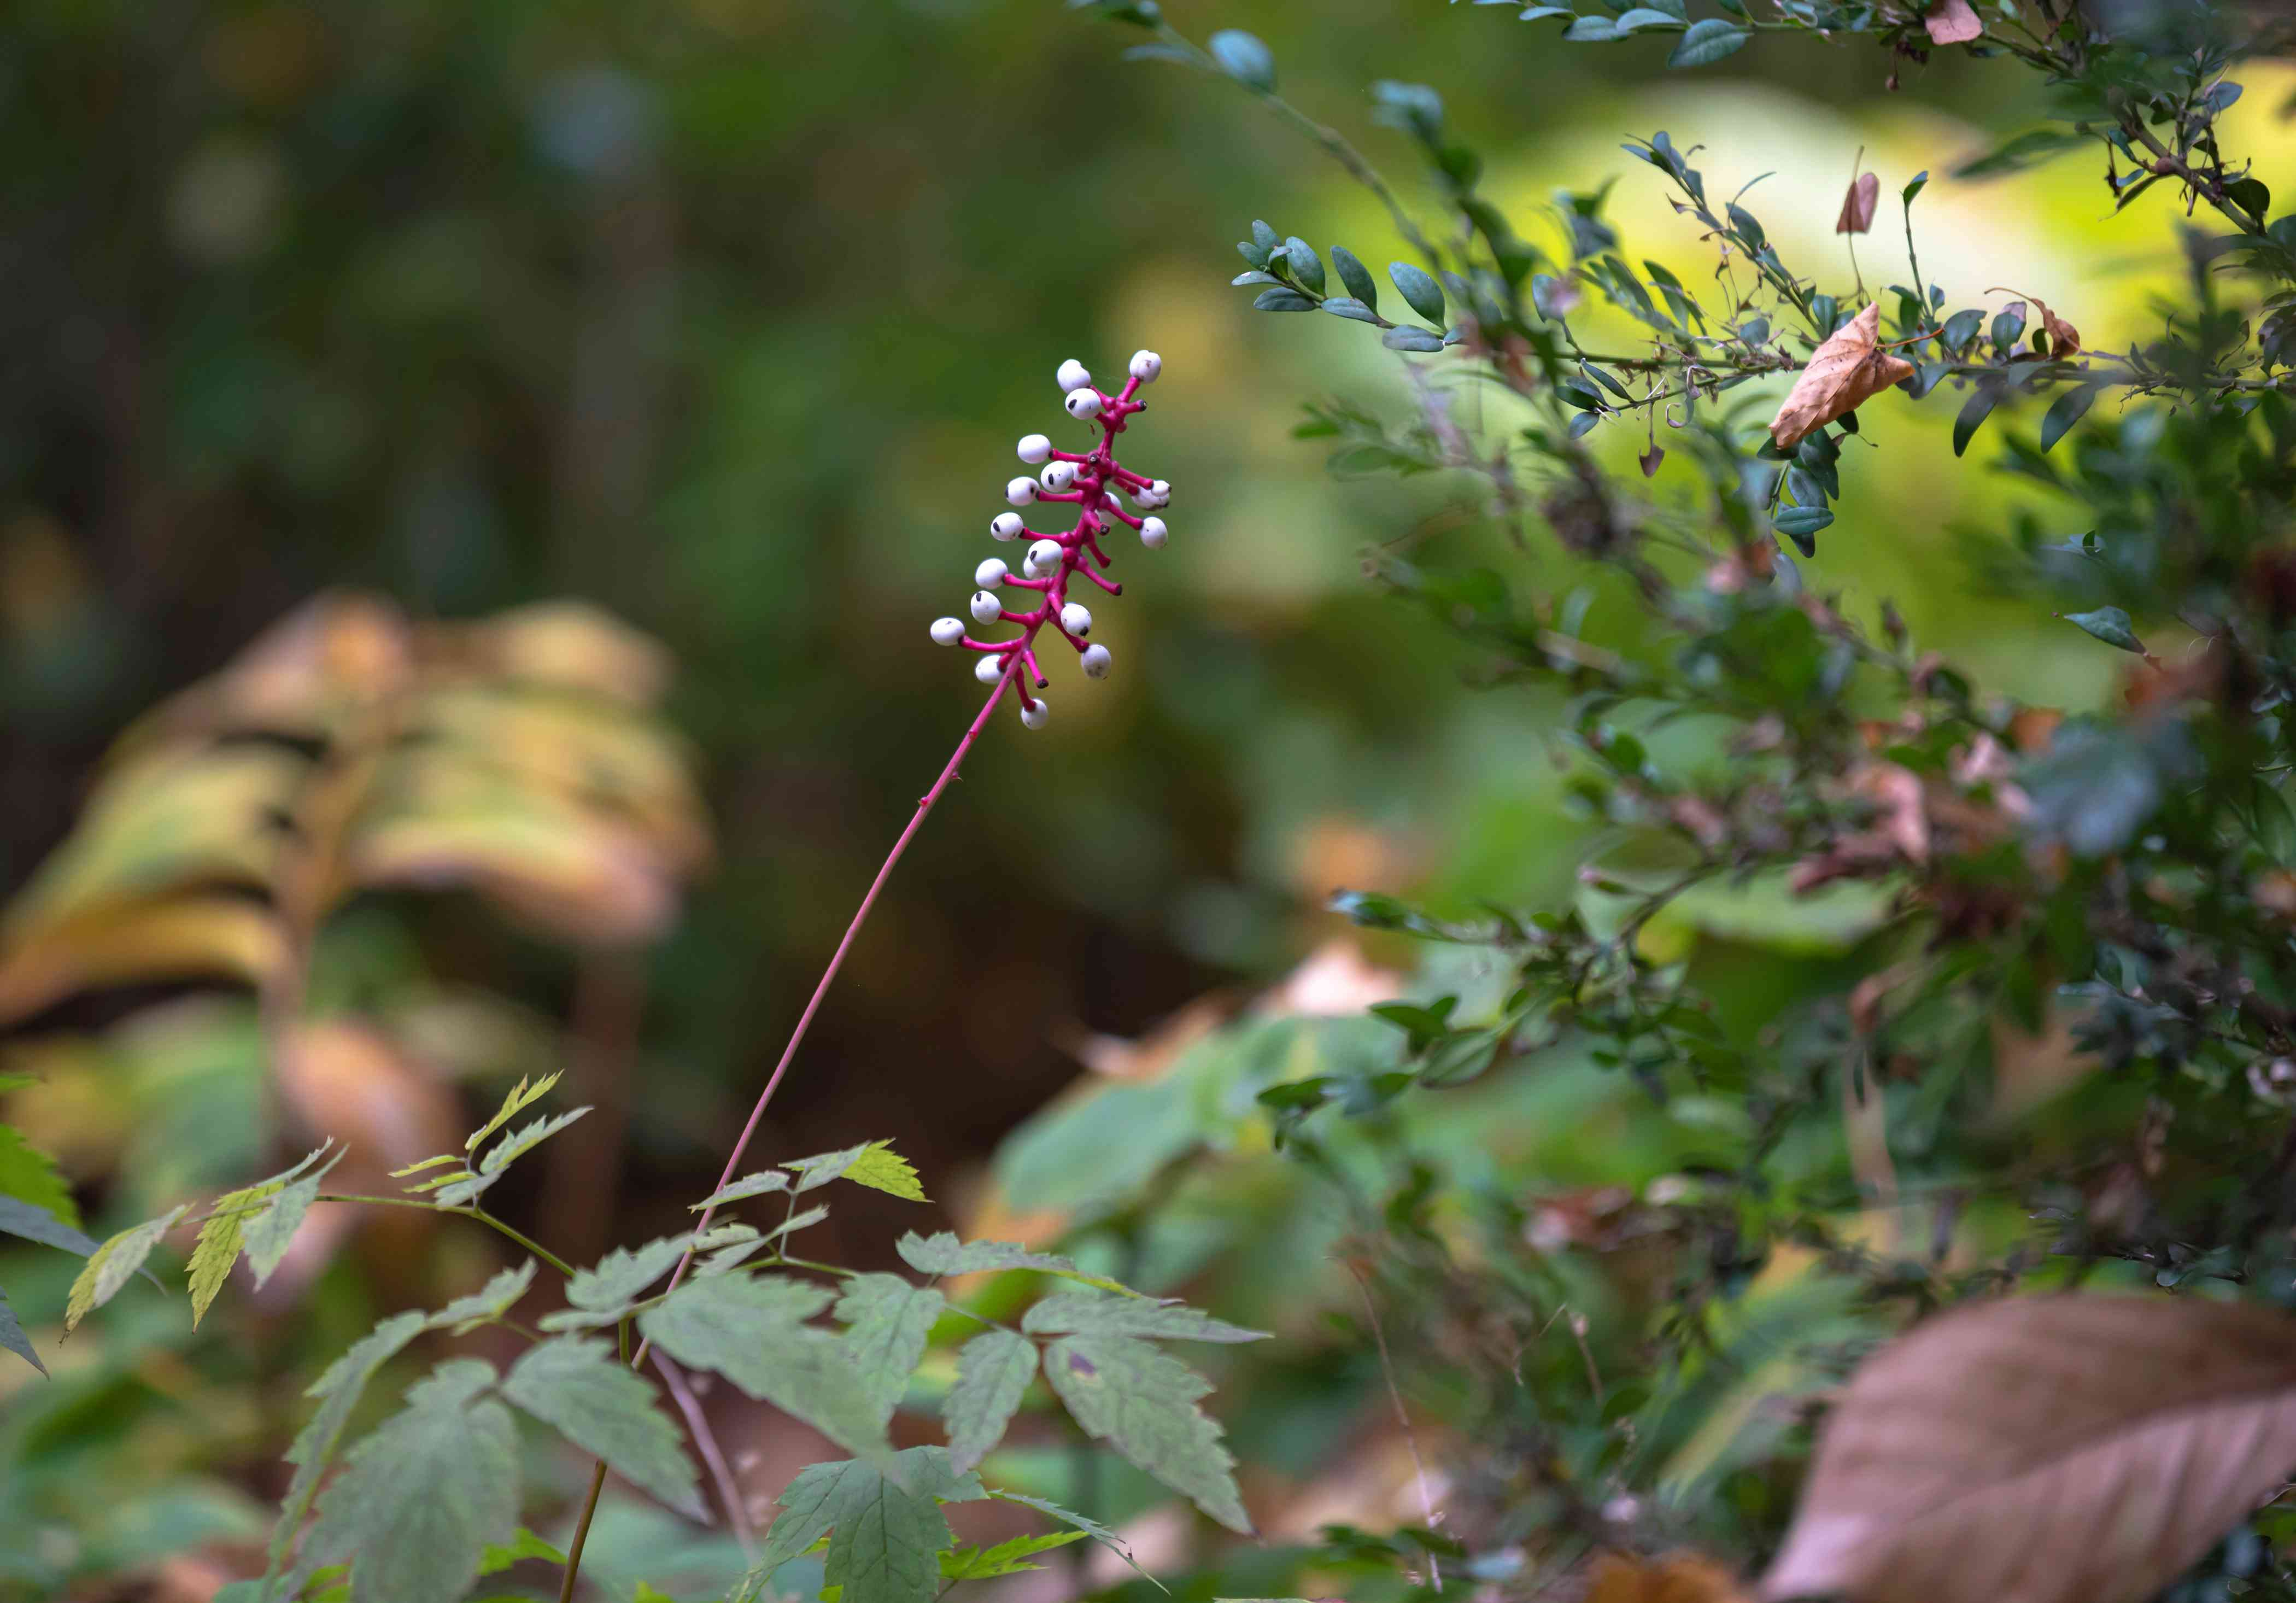 White baneberry plant with long and thin pink stem with white berries in wooded area